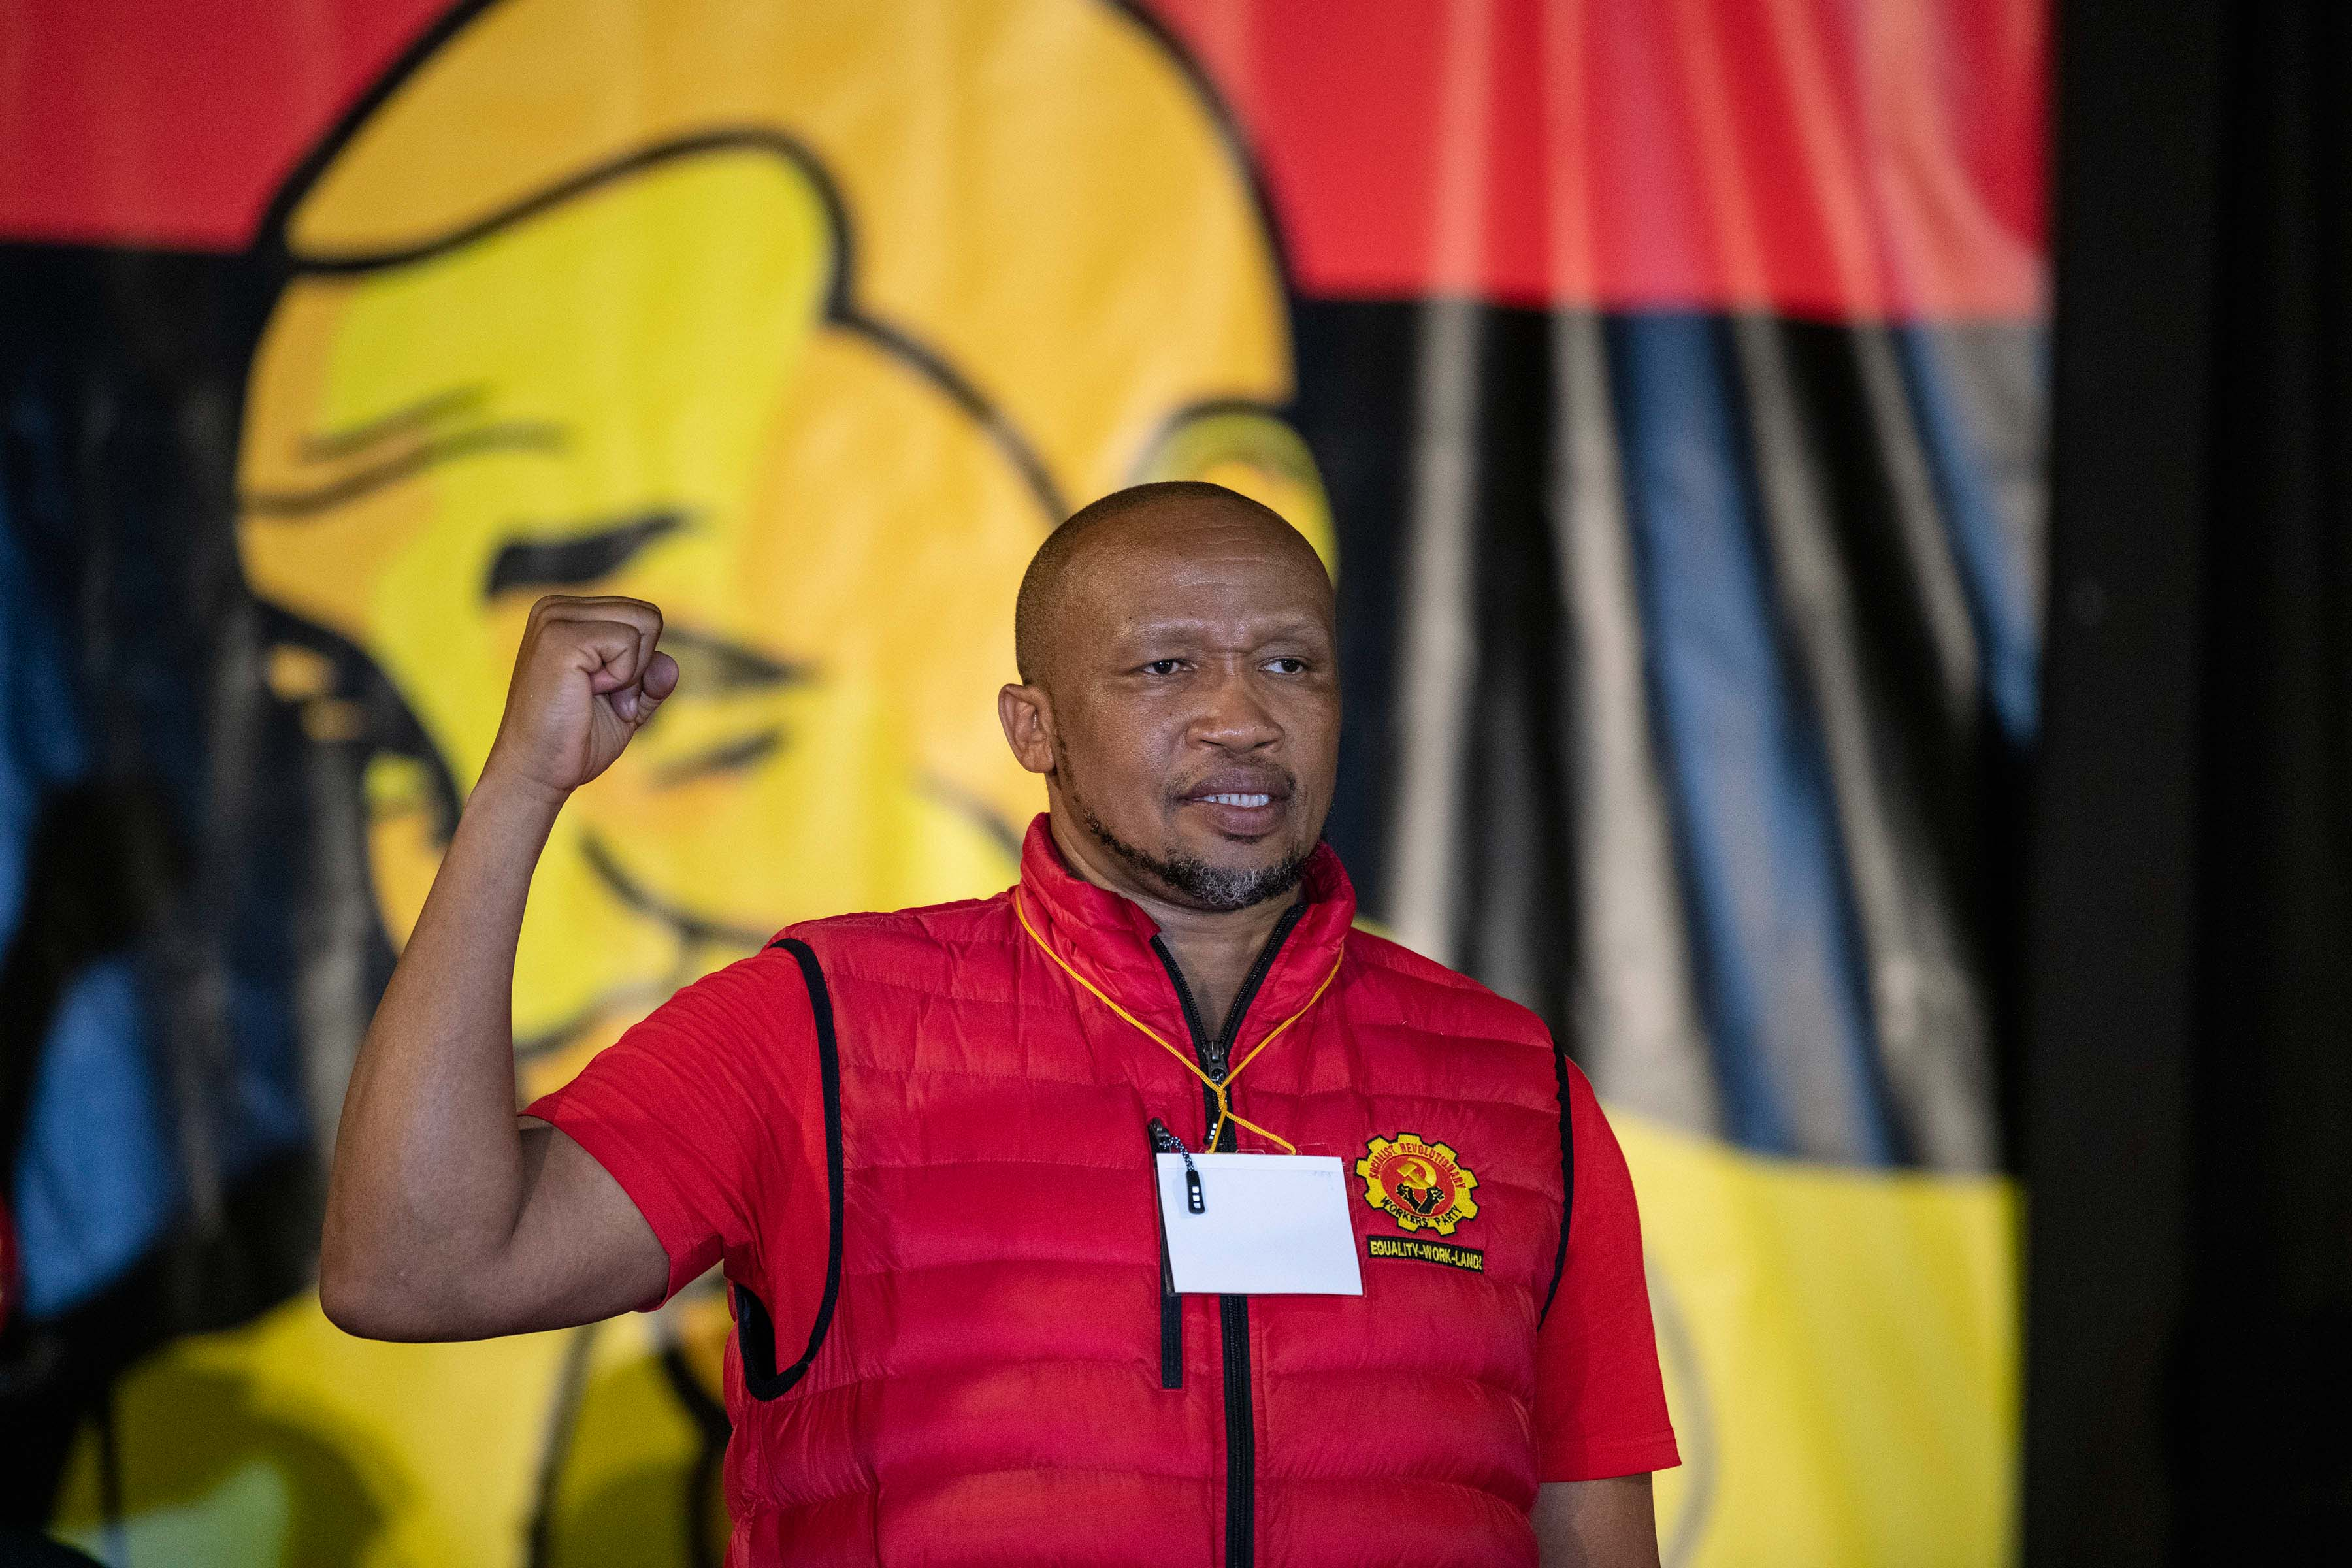 4 April 2019: Numsa general secretary Irvin Jim during the launch.